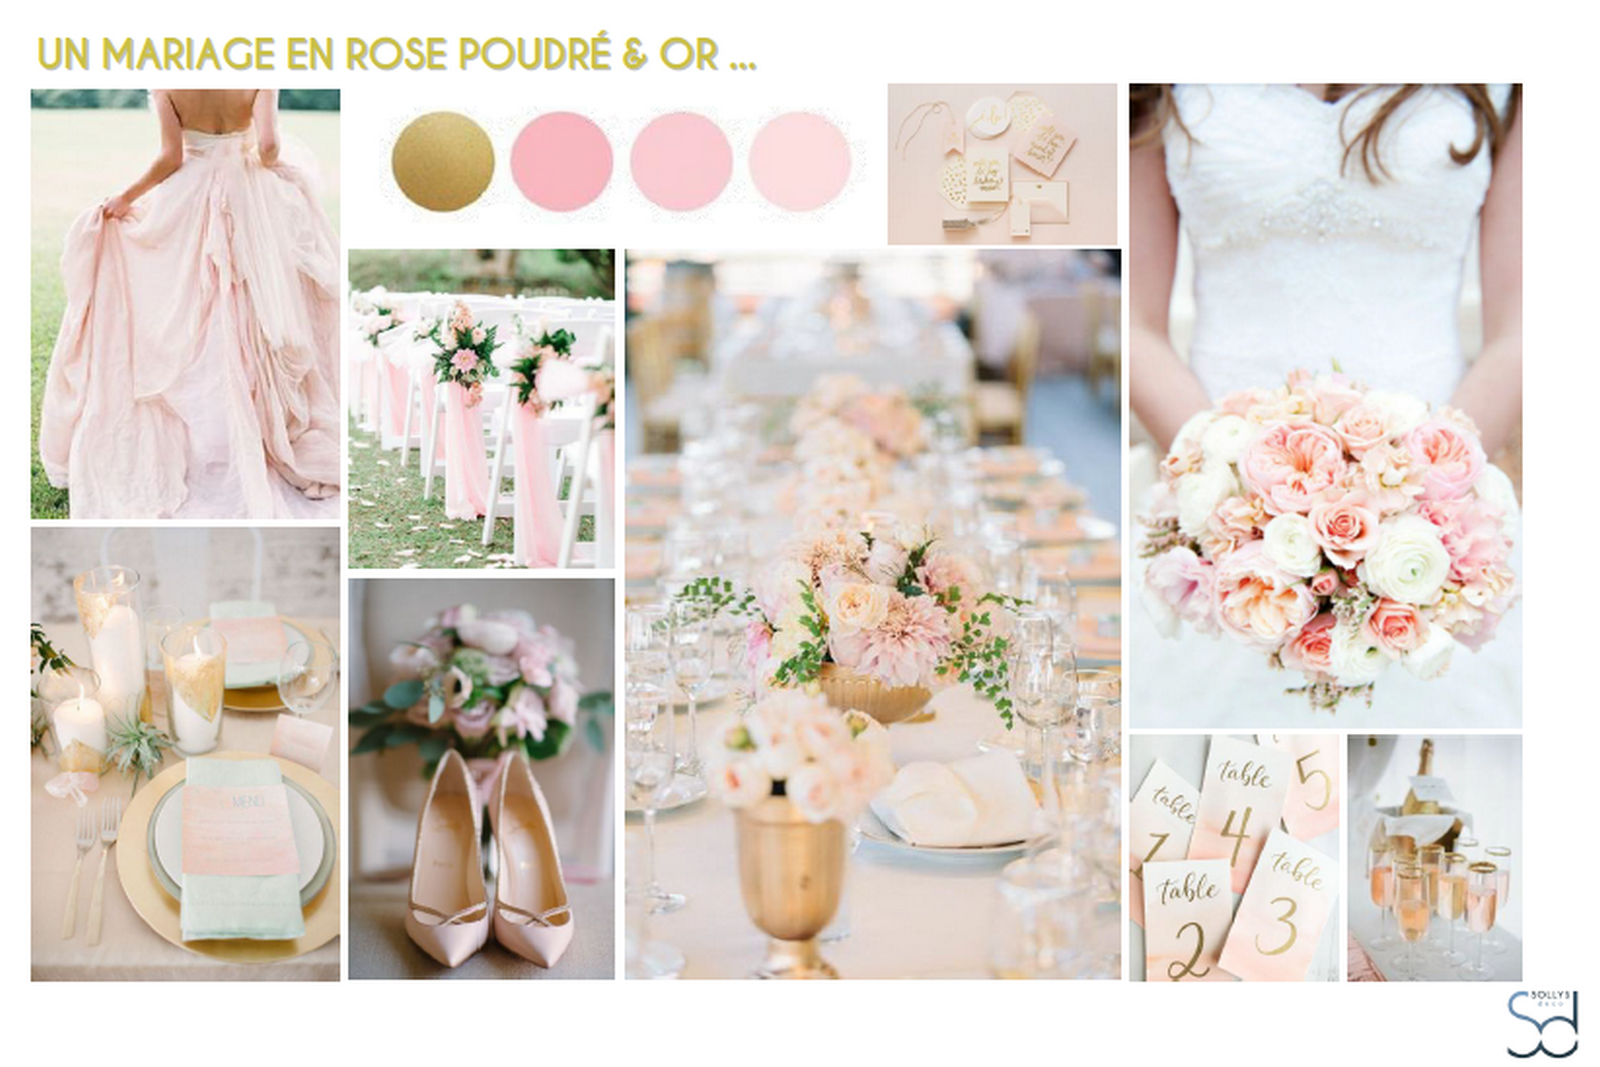 planche-inspiration-mariage-rose-poudre-et-or